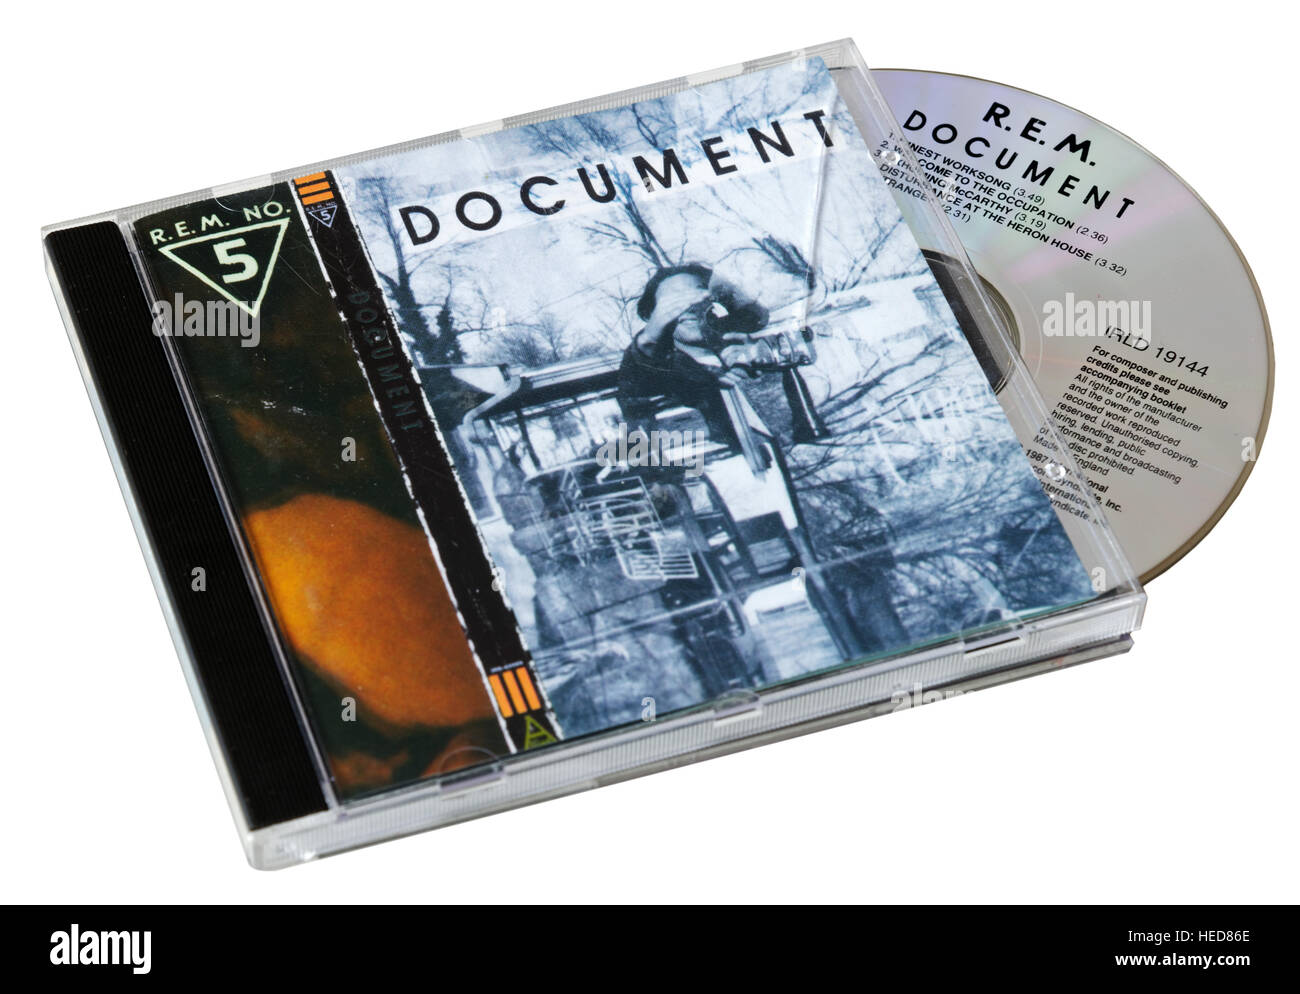 REM Document CD - Stock Image